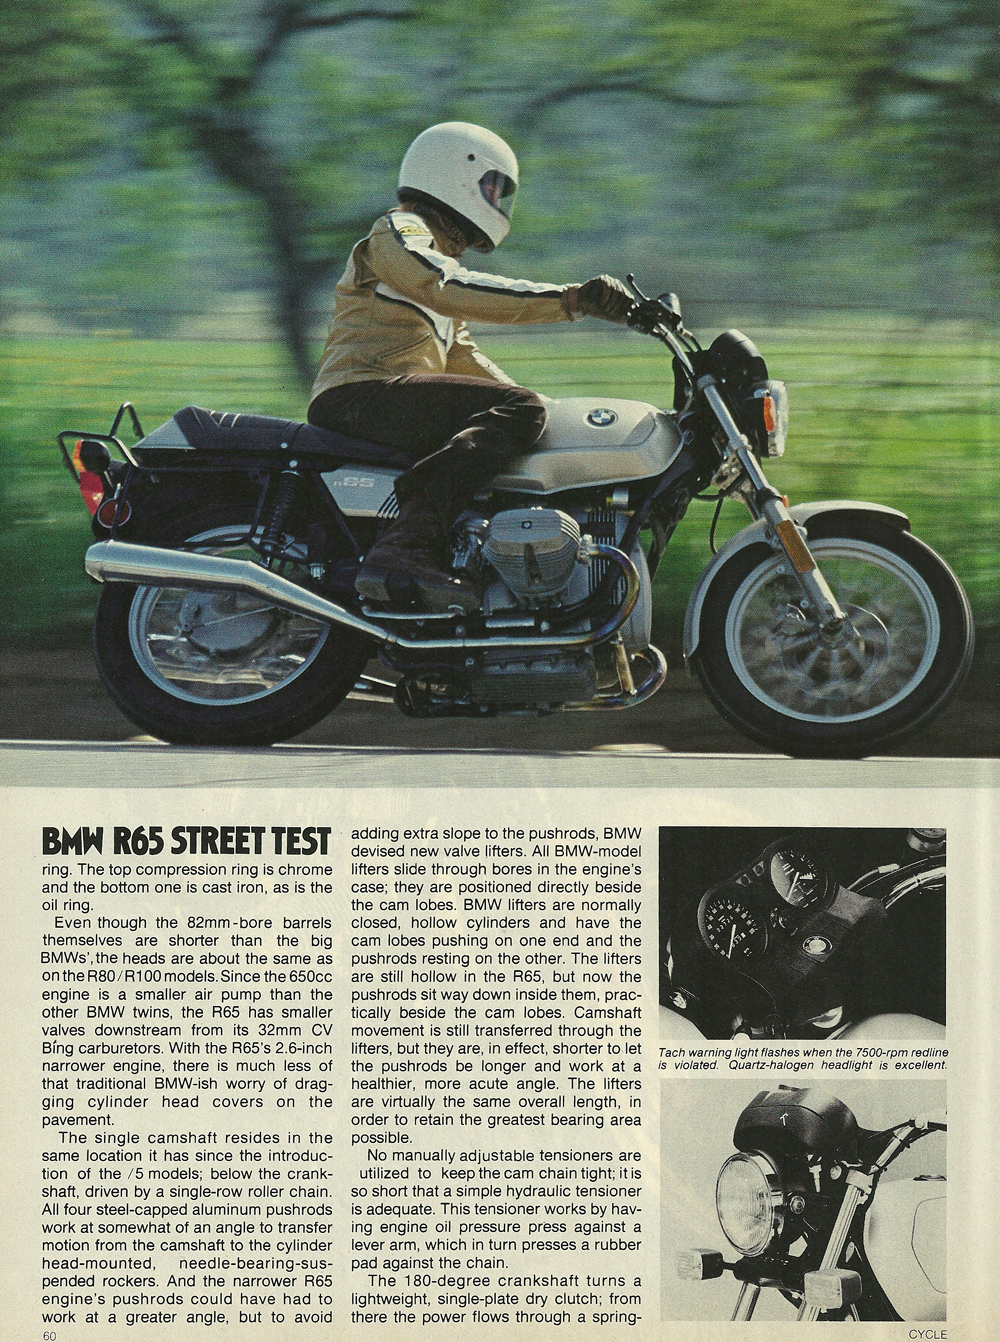 1979 BMW R65 road test 3.jpg